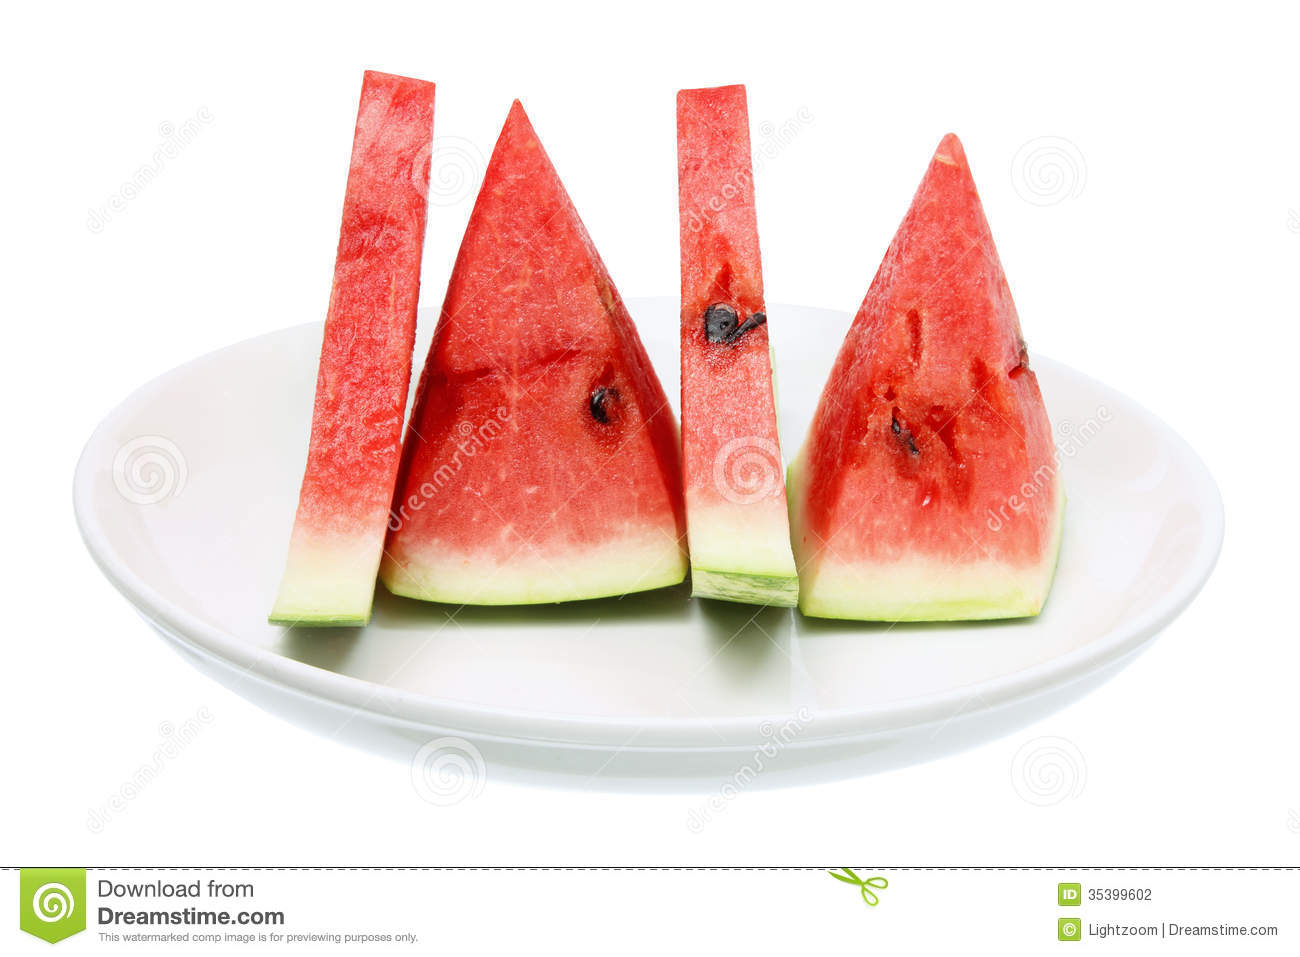 how to cut a slice of watermelon